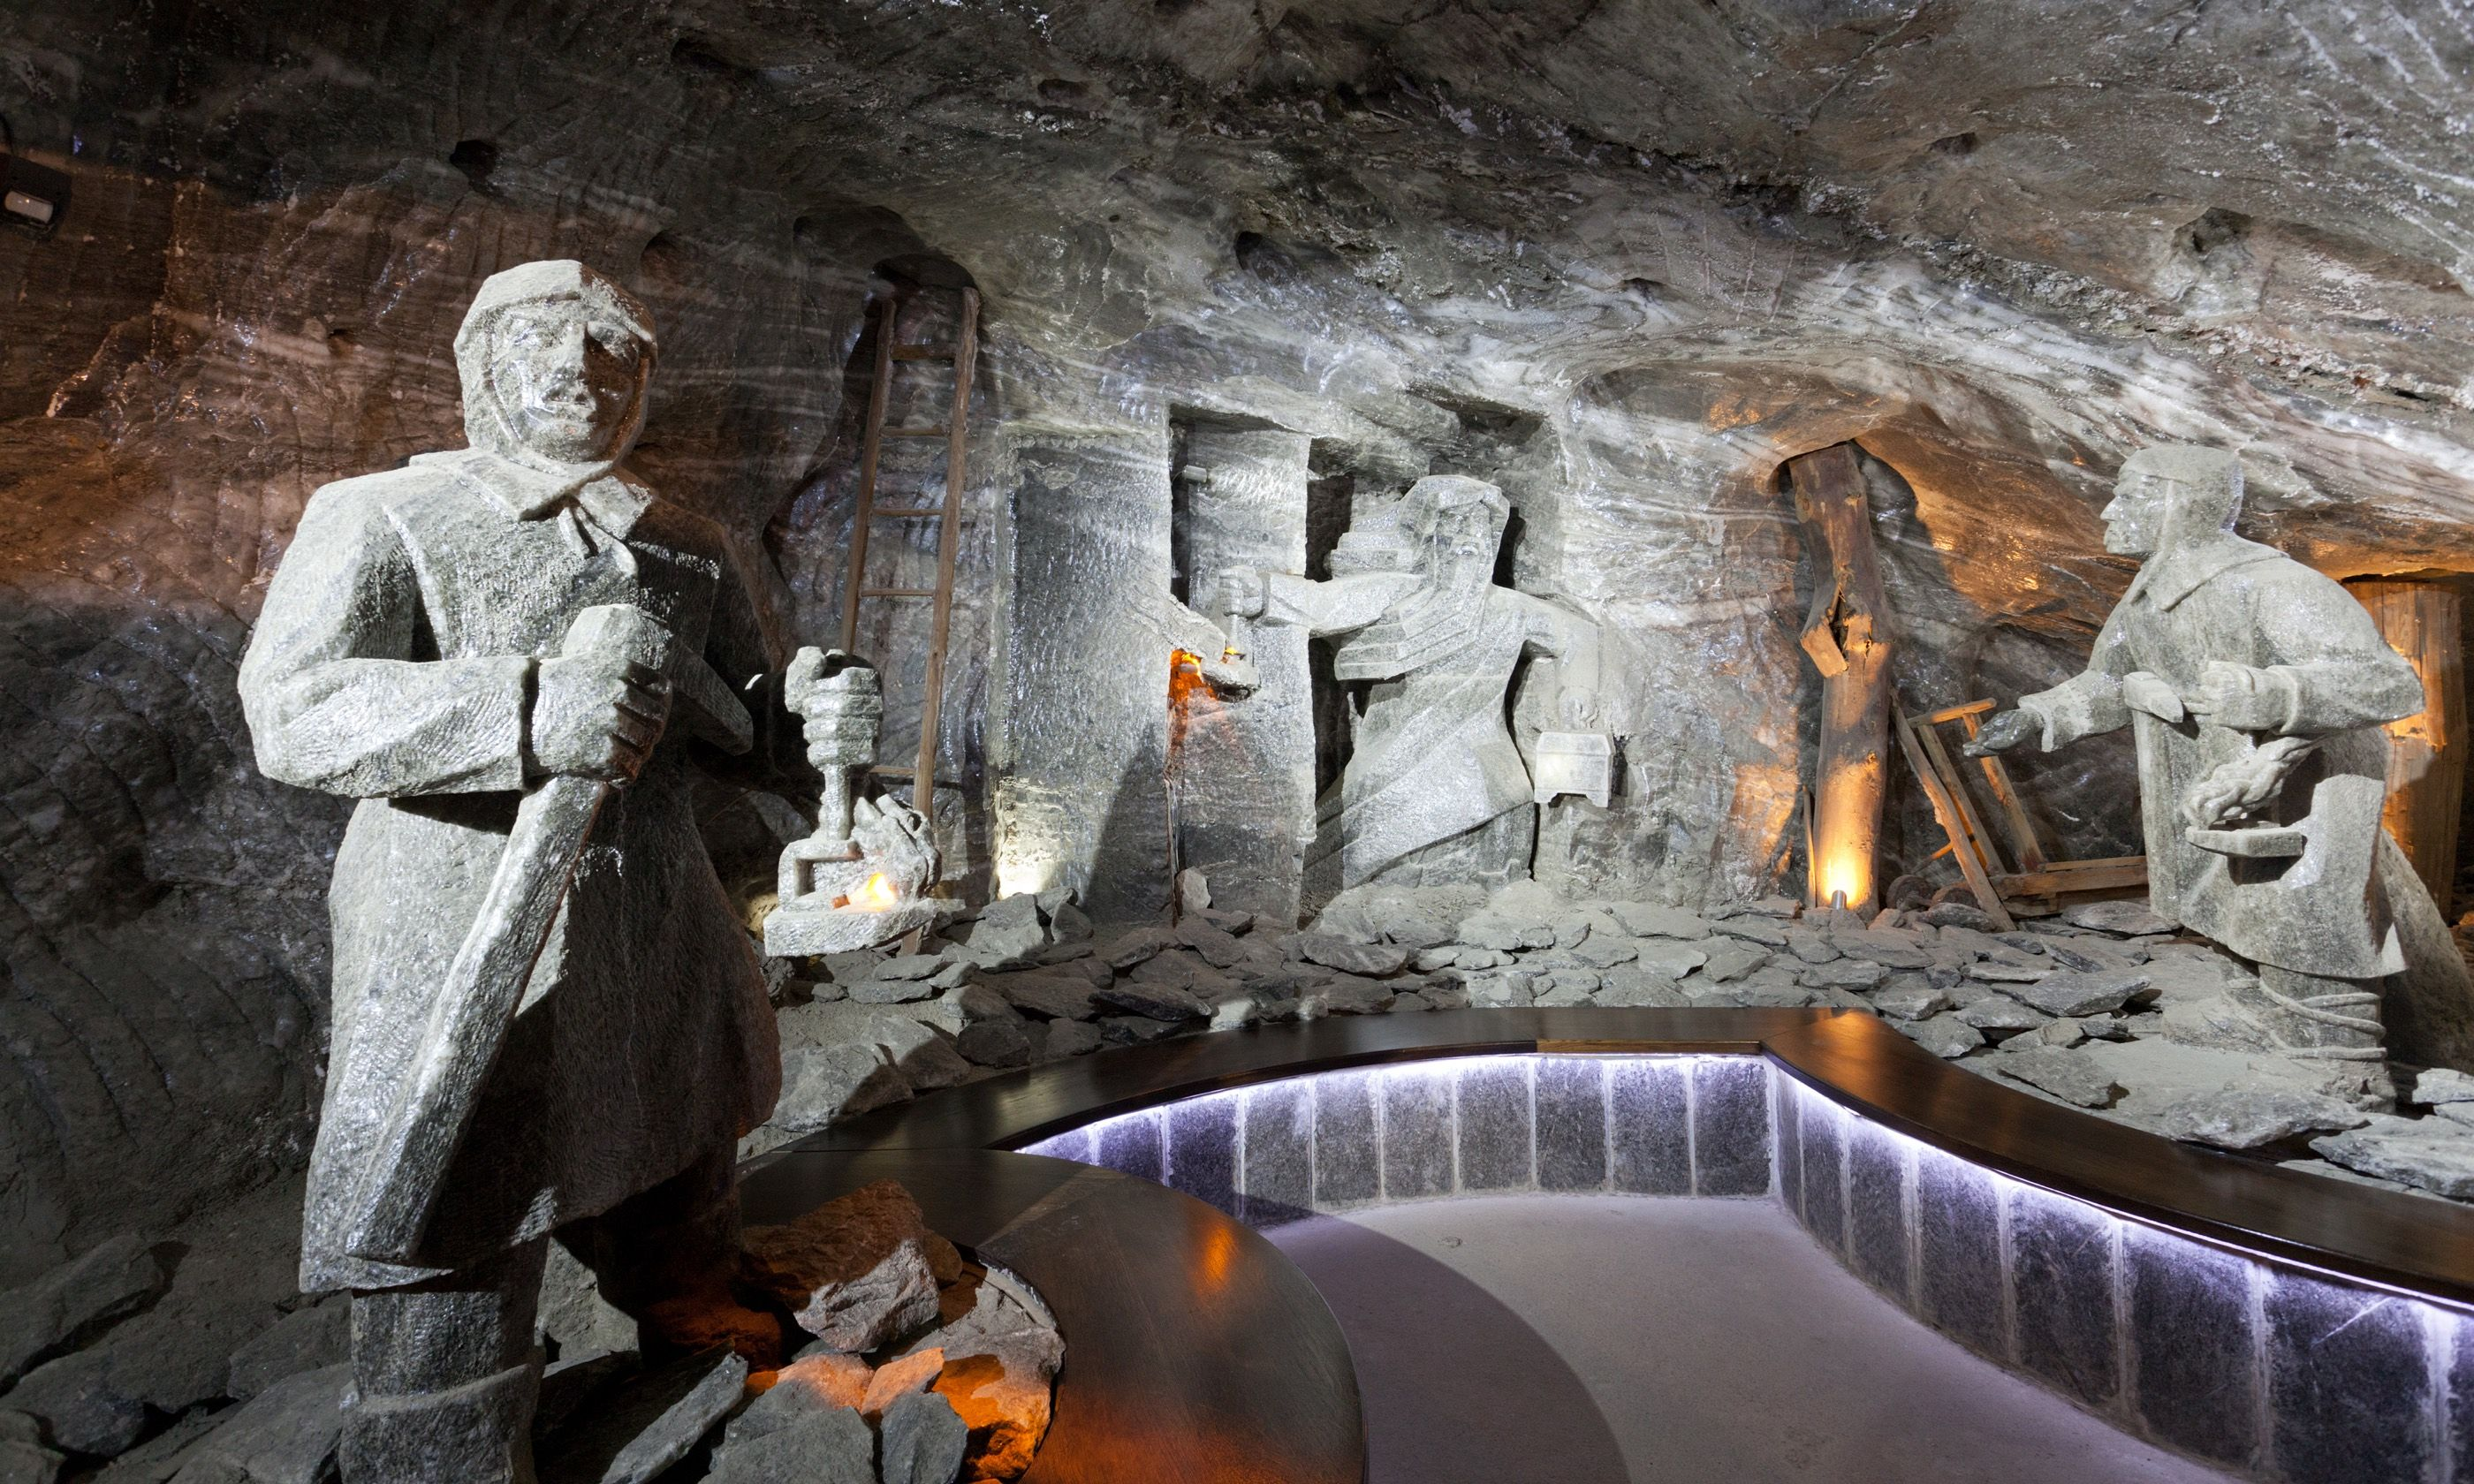 Workers carved from salt in Wieliczka (Dreamstime)